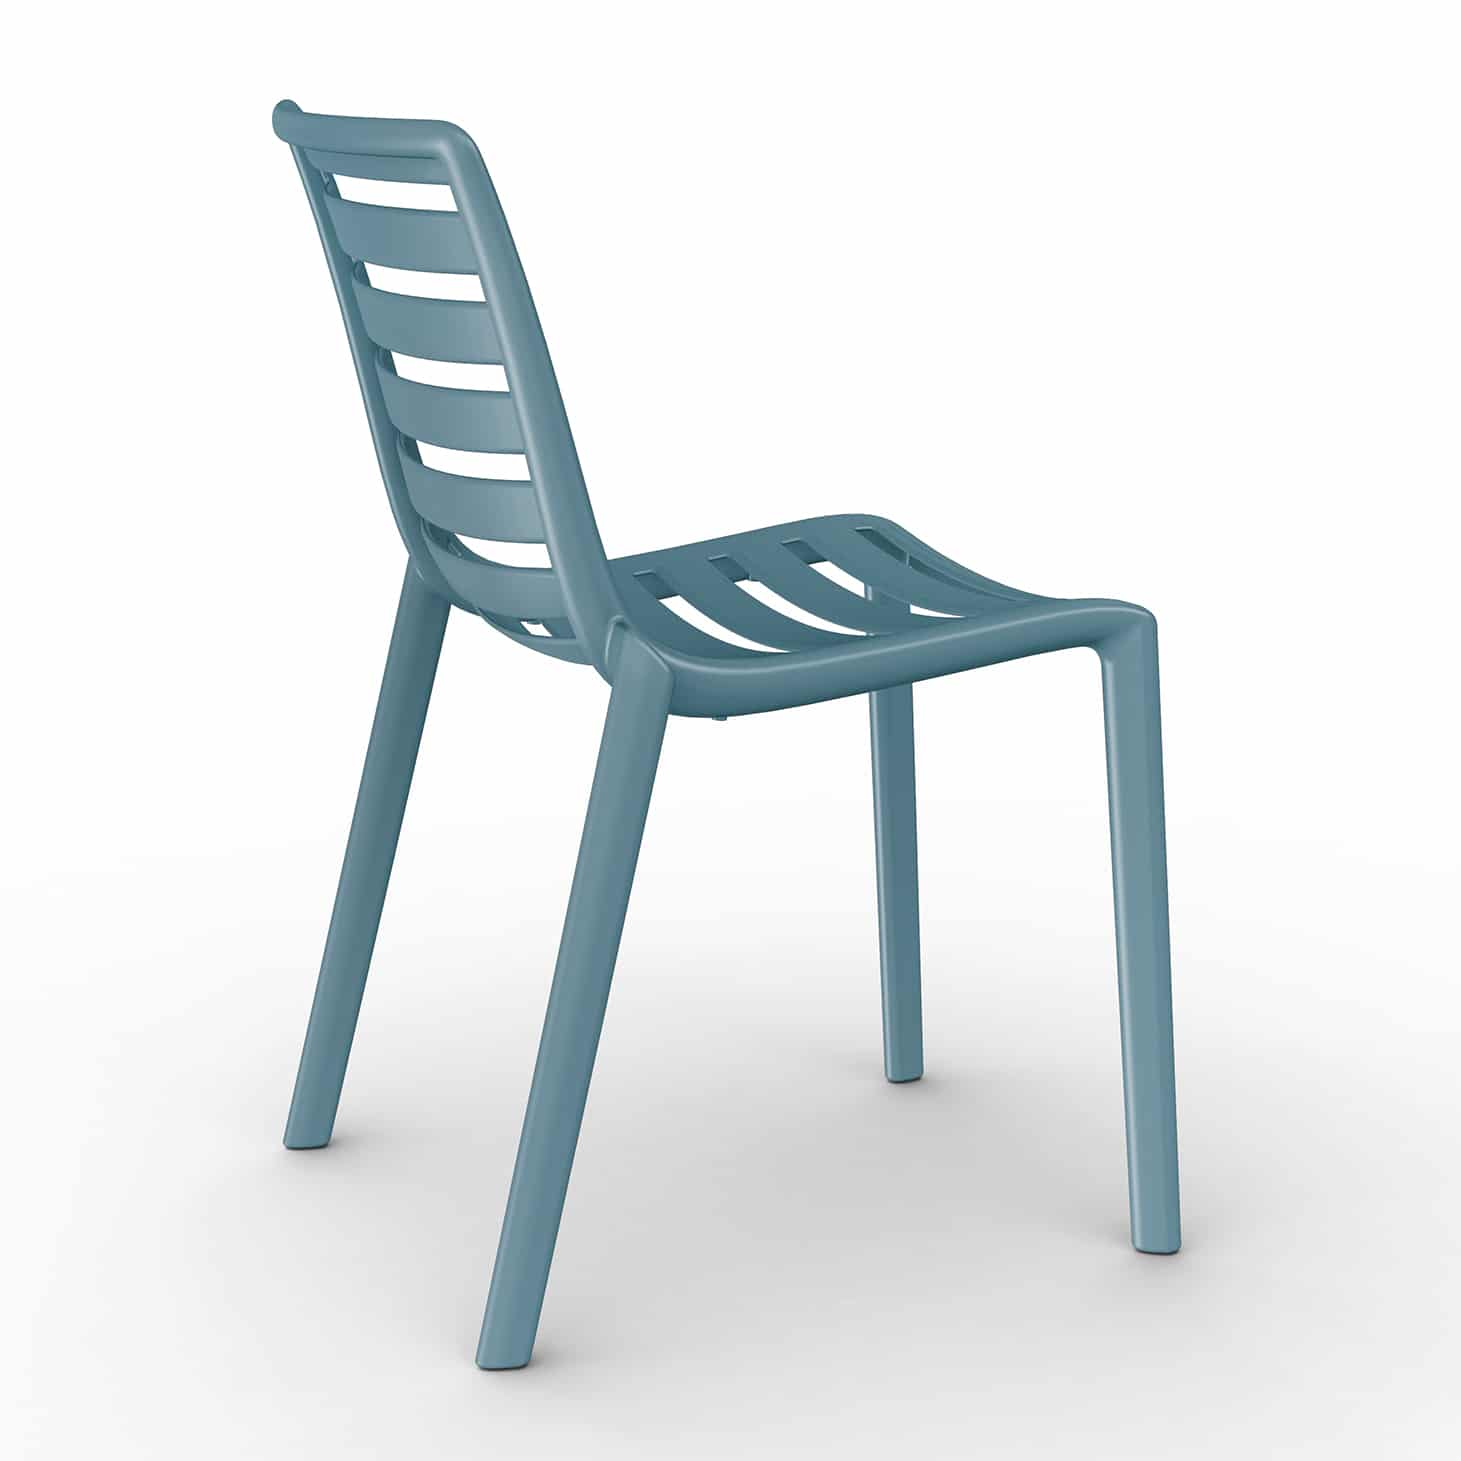 <p>Outdoor Furniture Contemporary Collection – Ysleta Chair – Retro Blue.</p> <p> </p> <p>Chair designed for indoor and outdoor use available in a variety of colours, capturing essential features such as lightness, stability, functionality, ergonomics and care for the environment. Comfort, Modernity and durability</p>